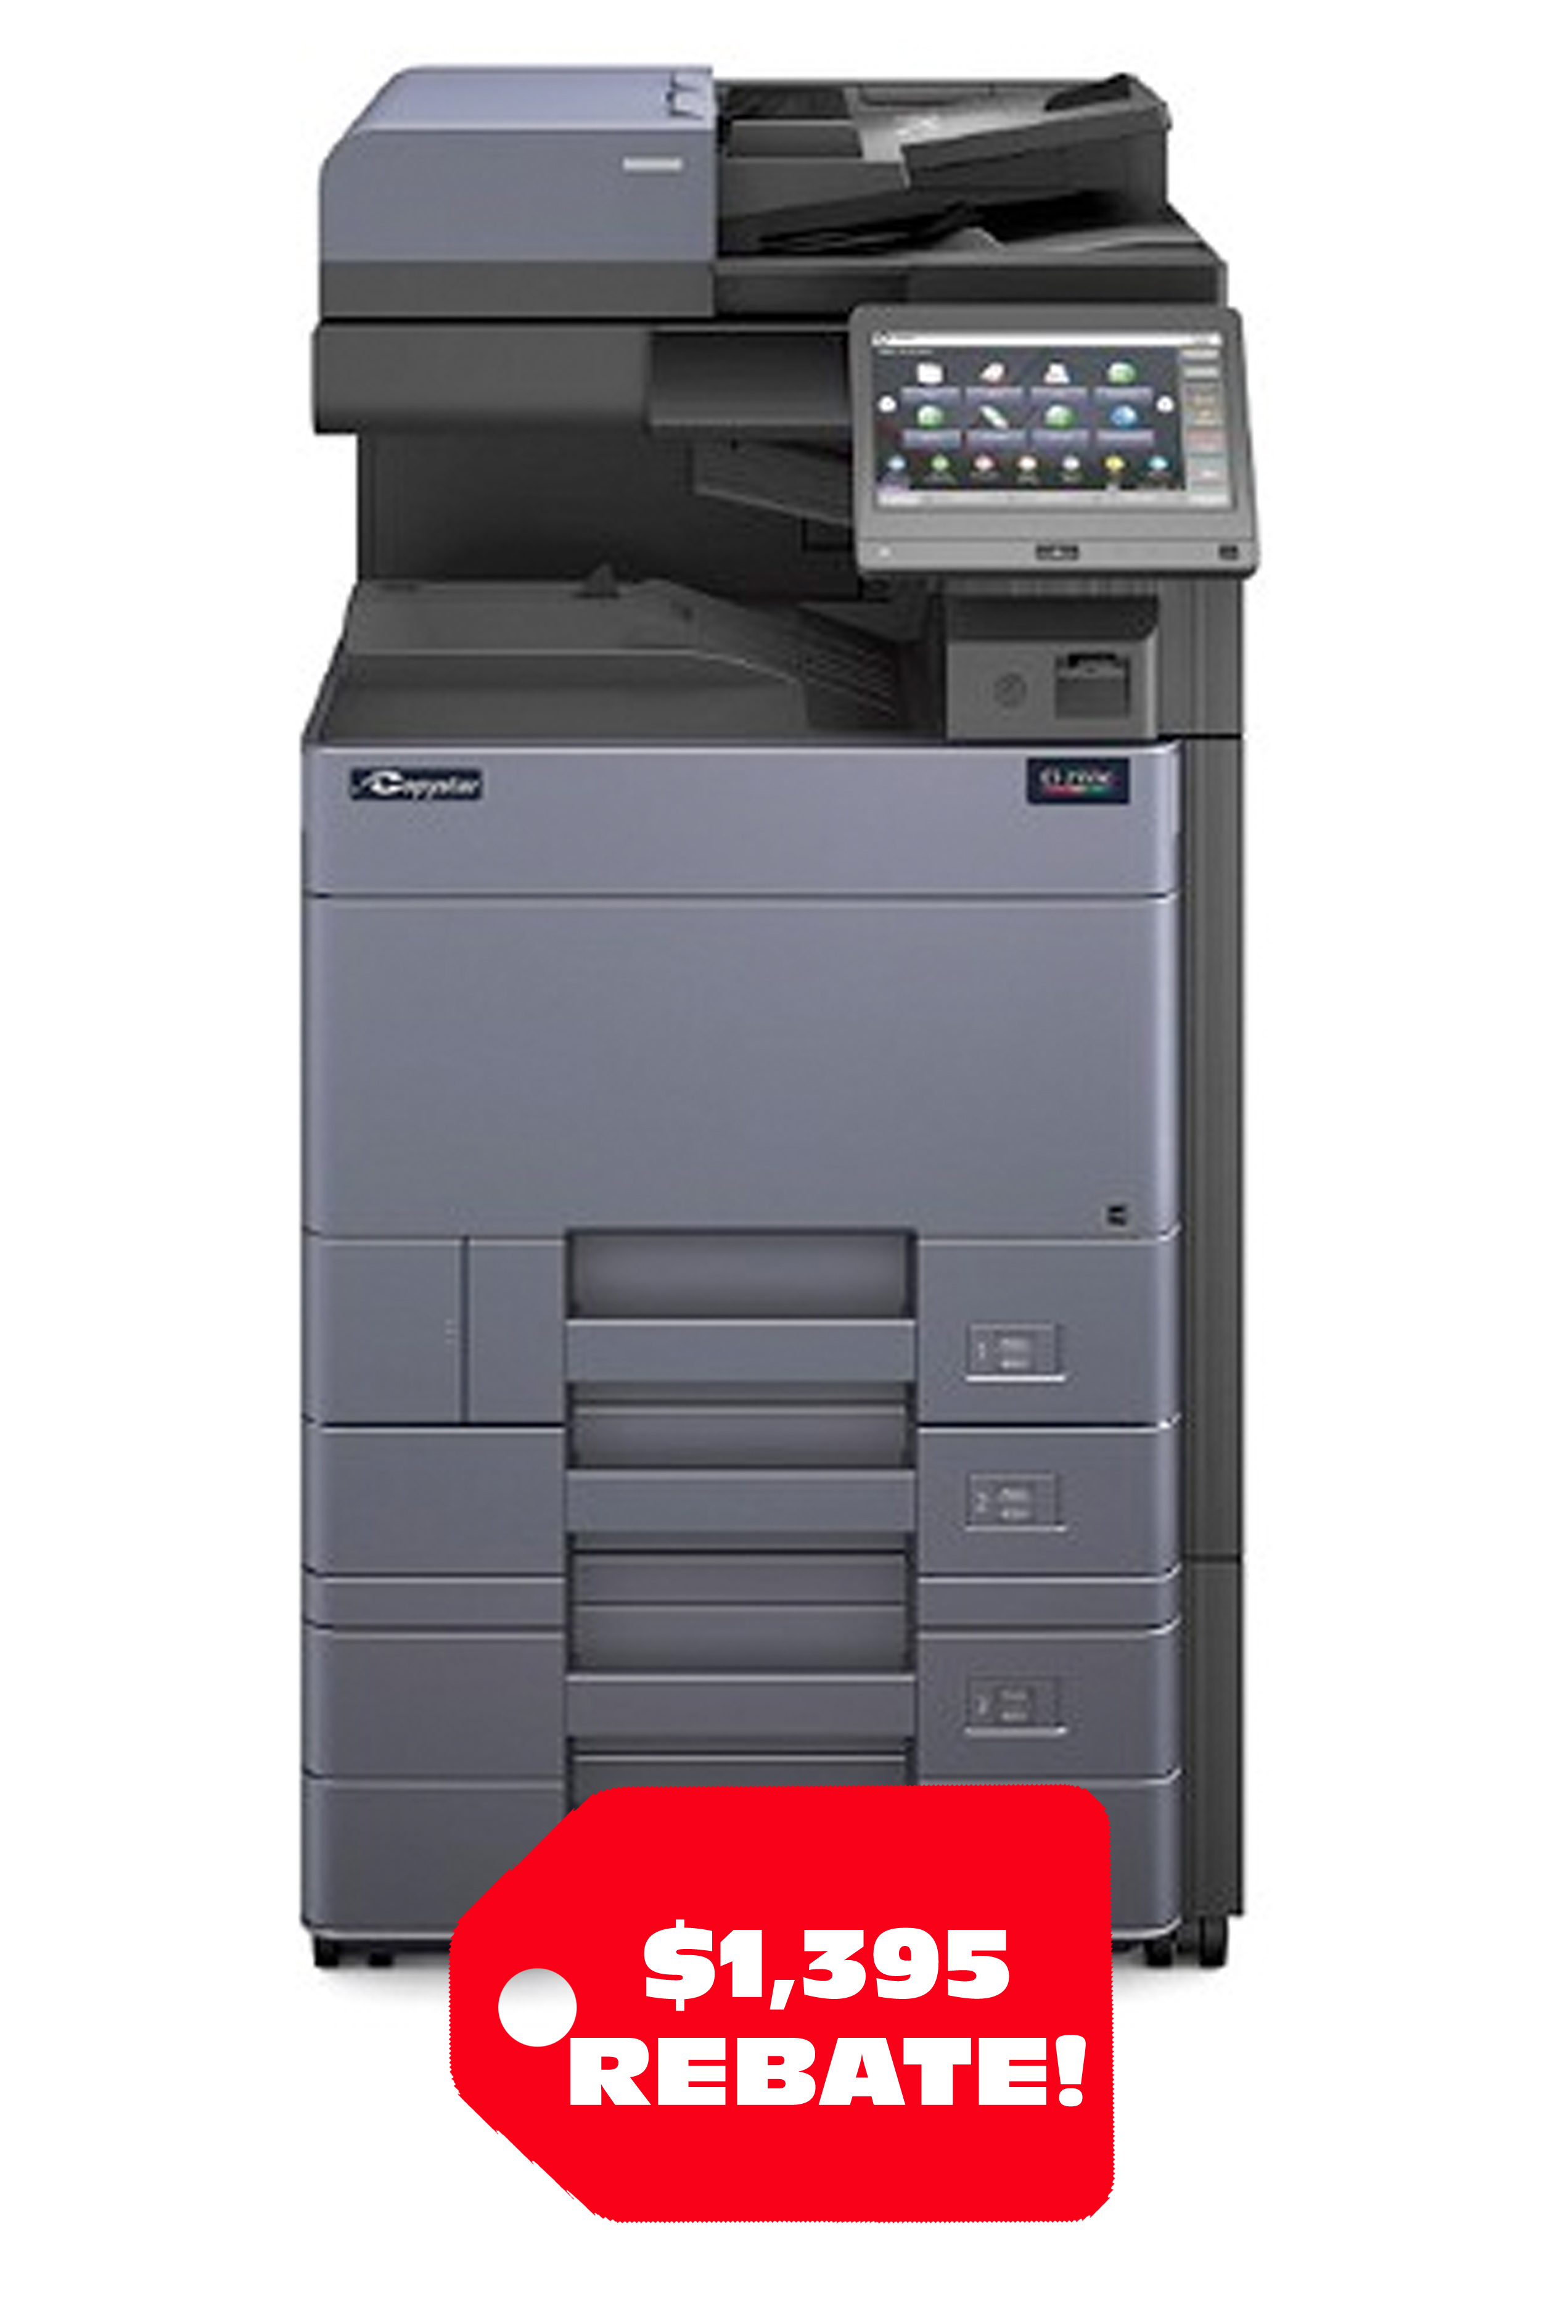 Copystar COPYSTAR CS 2553ci (25/25 PPM) A3 Color MFP